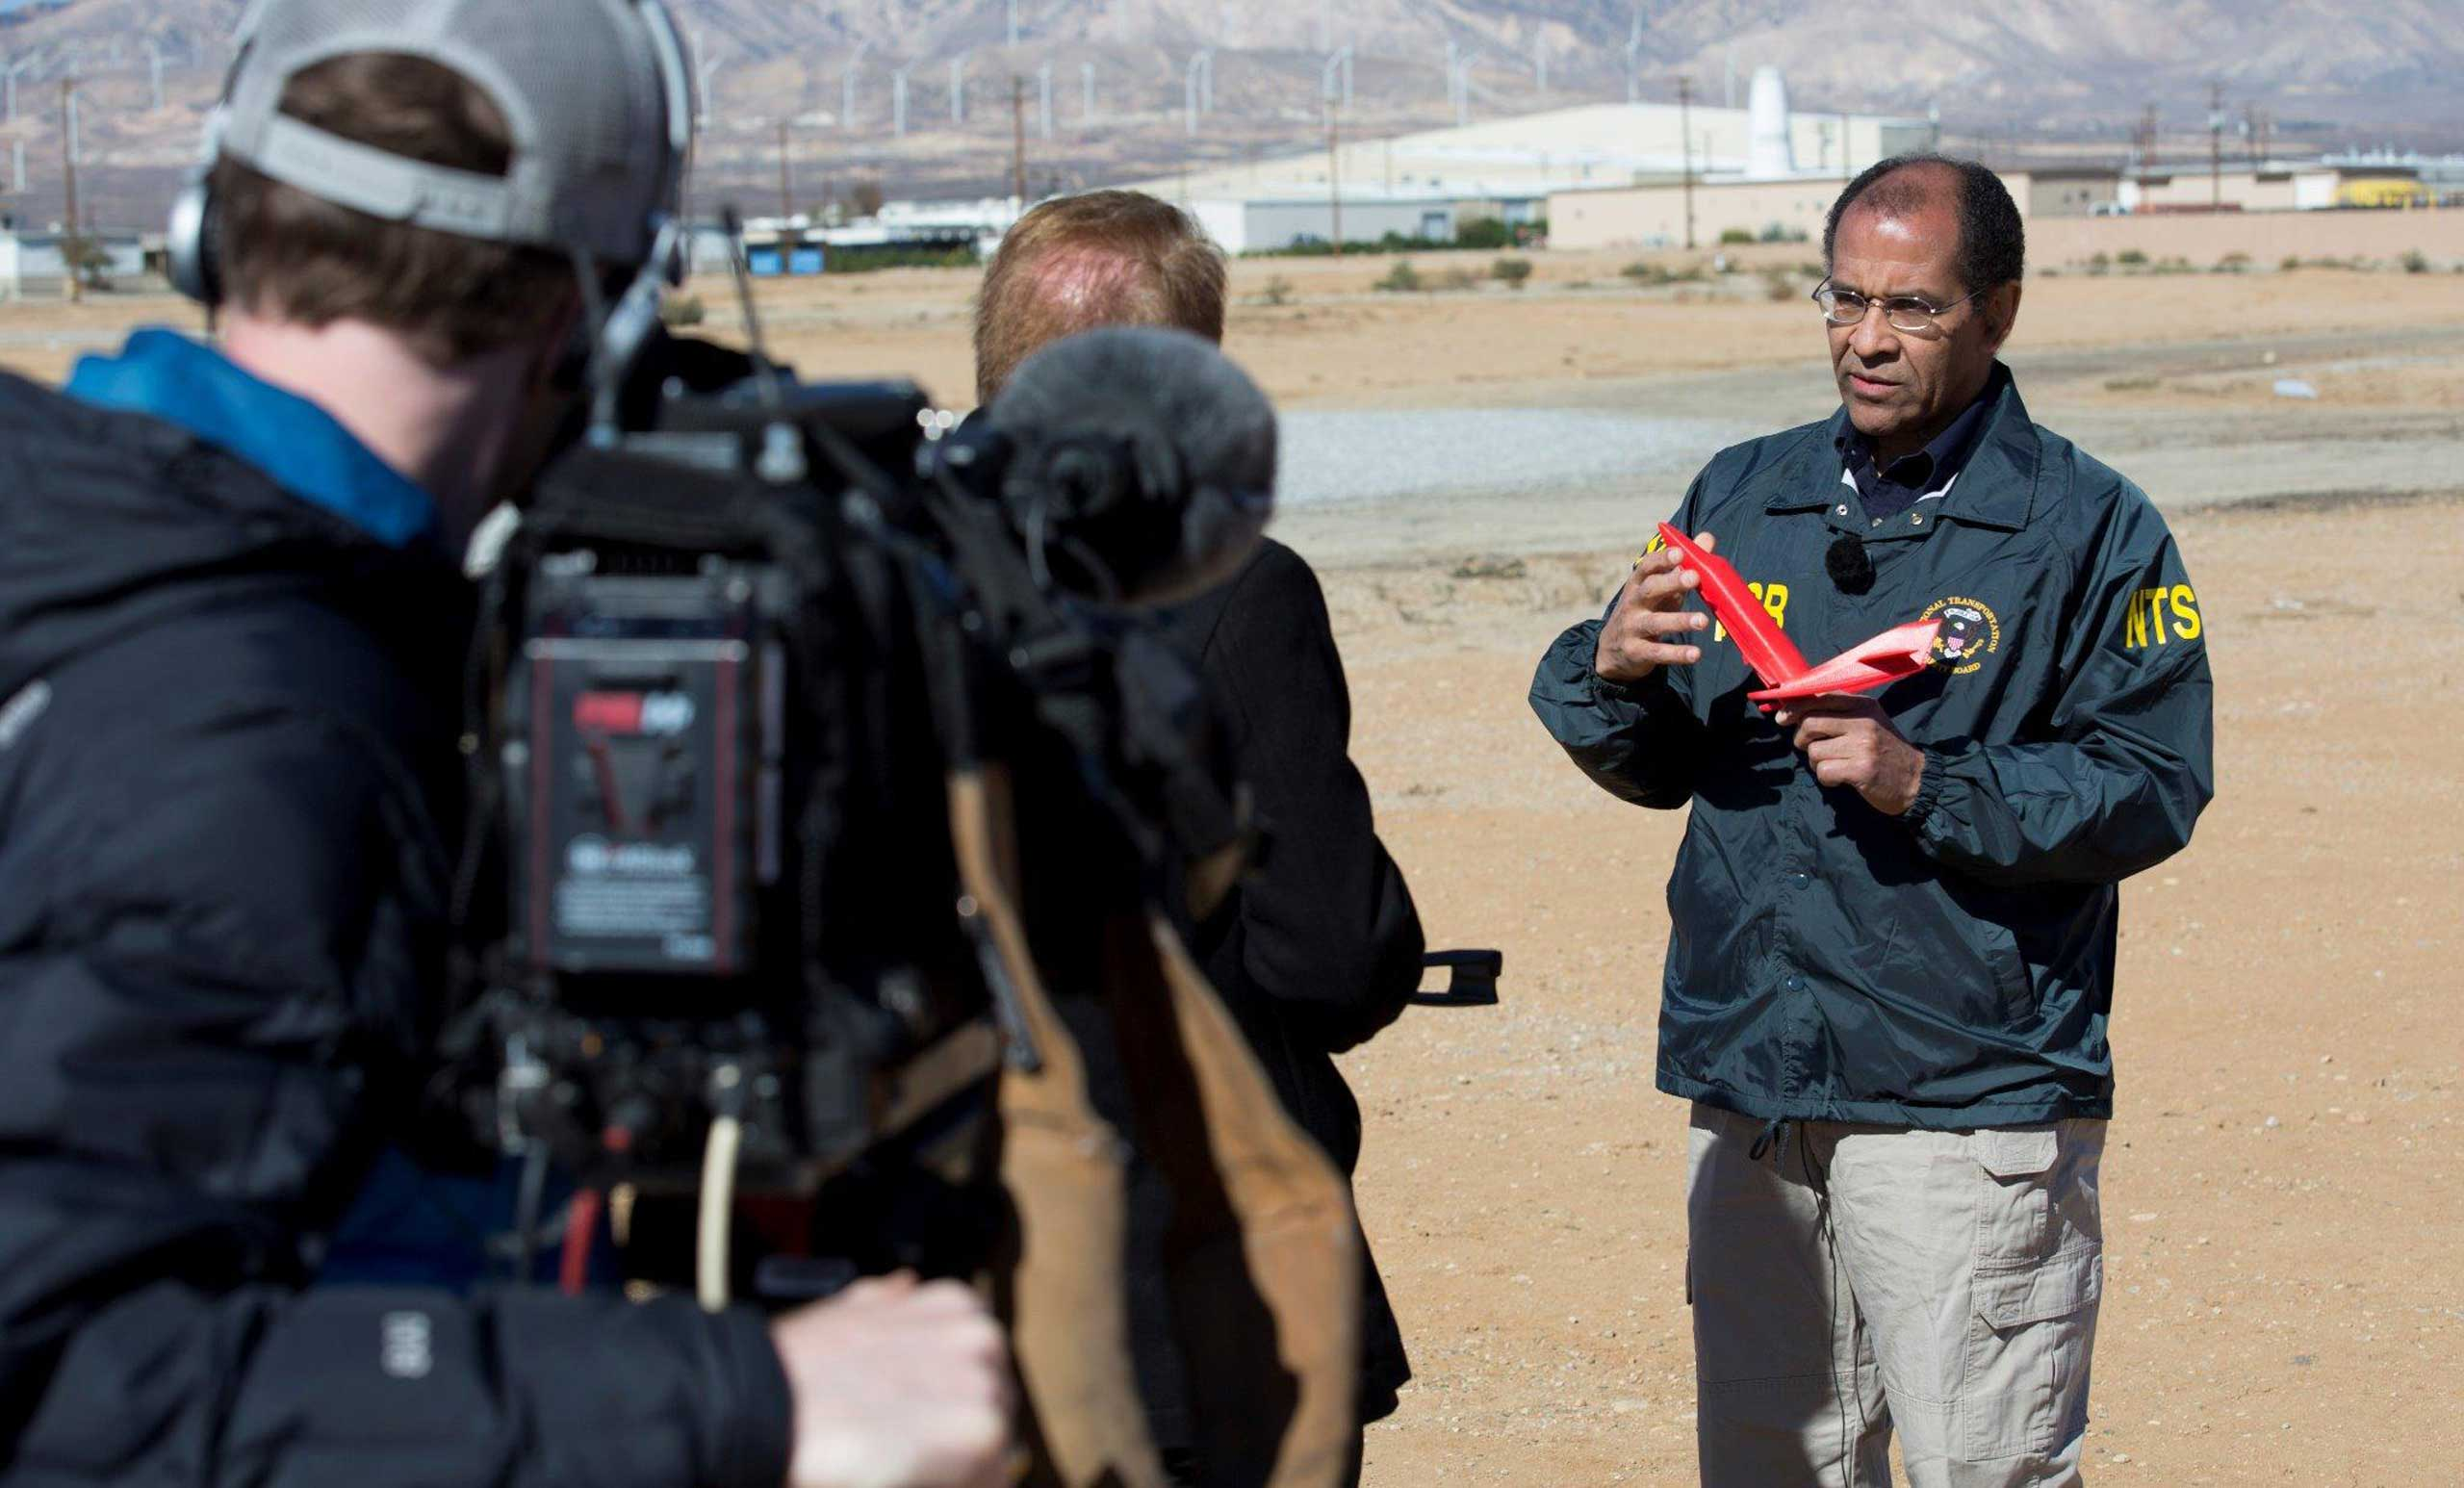 Acting NTSB Chairman Christopher Hart uses a model to demonstrate how the SpaceShipTwo rocket plane was supposed to  feather  its wings during an interview with the a video crew, Nov. 3, 2014.